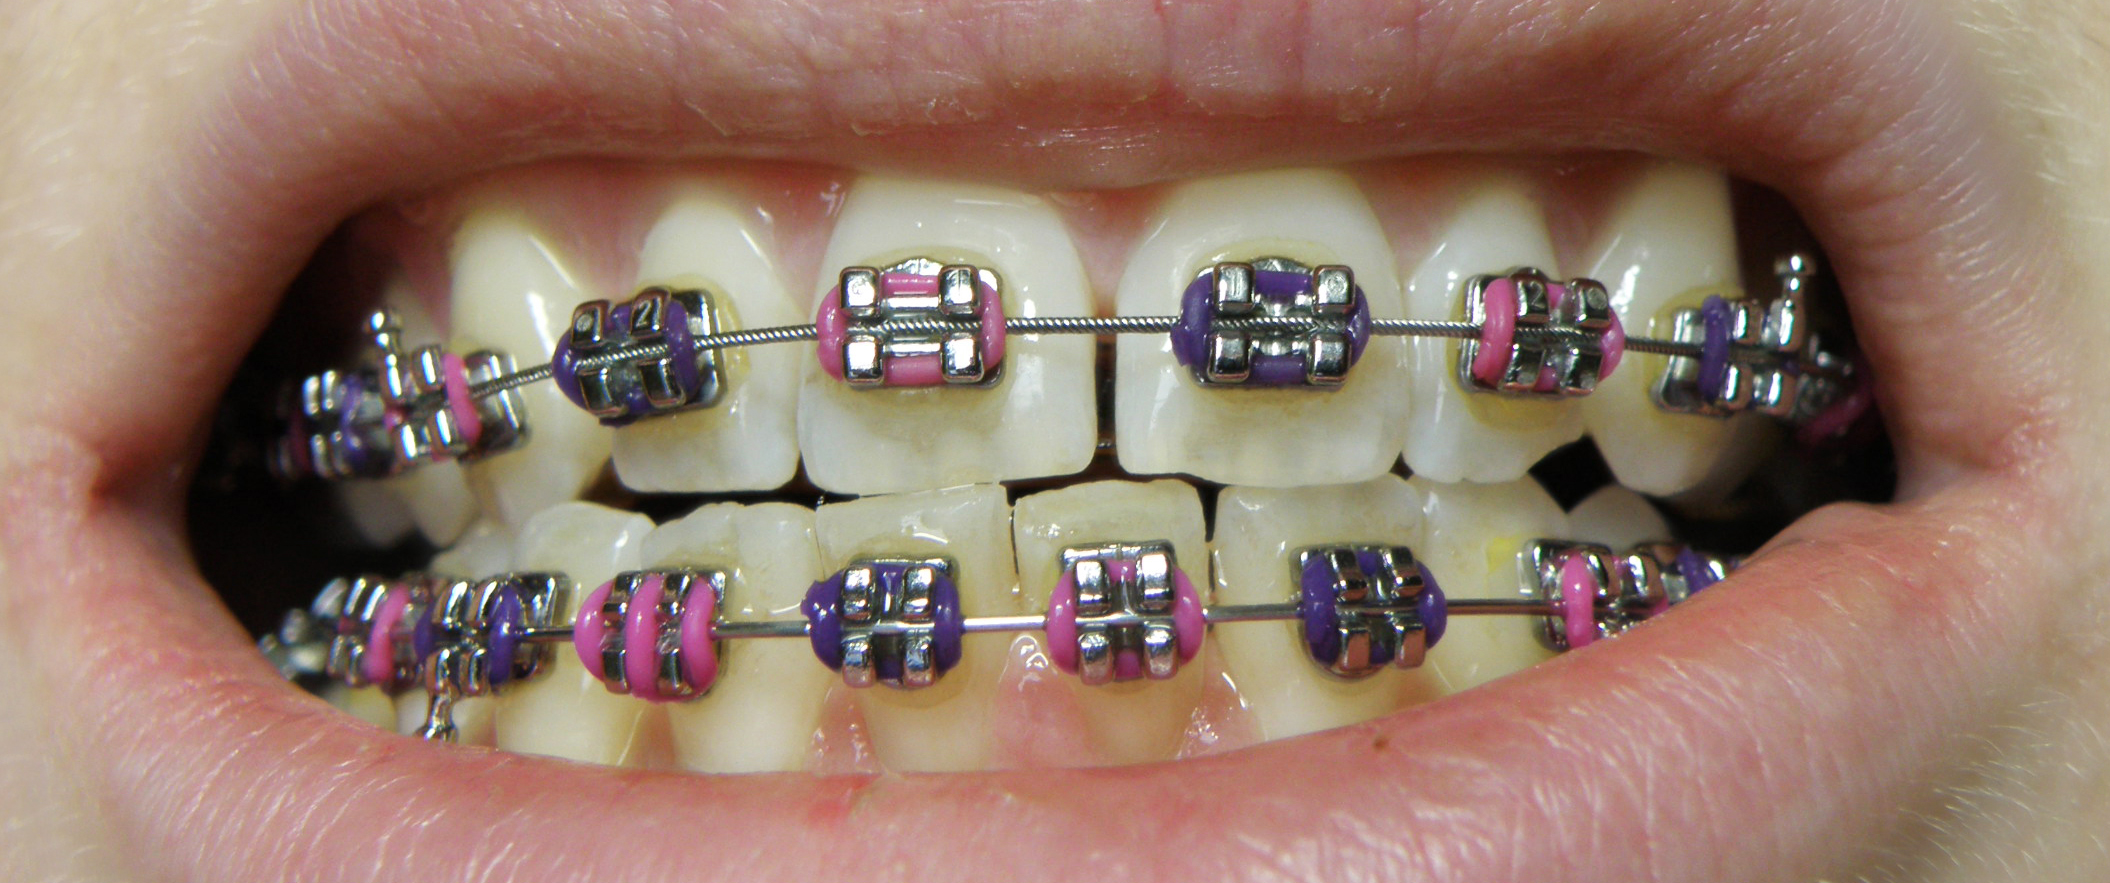 Dental braces - Wikipedia